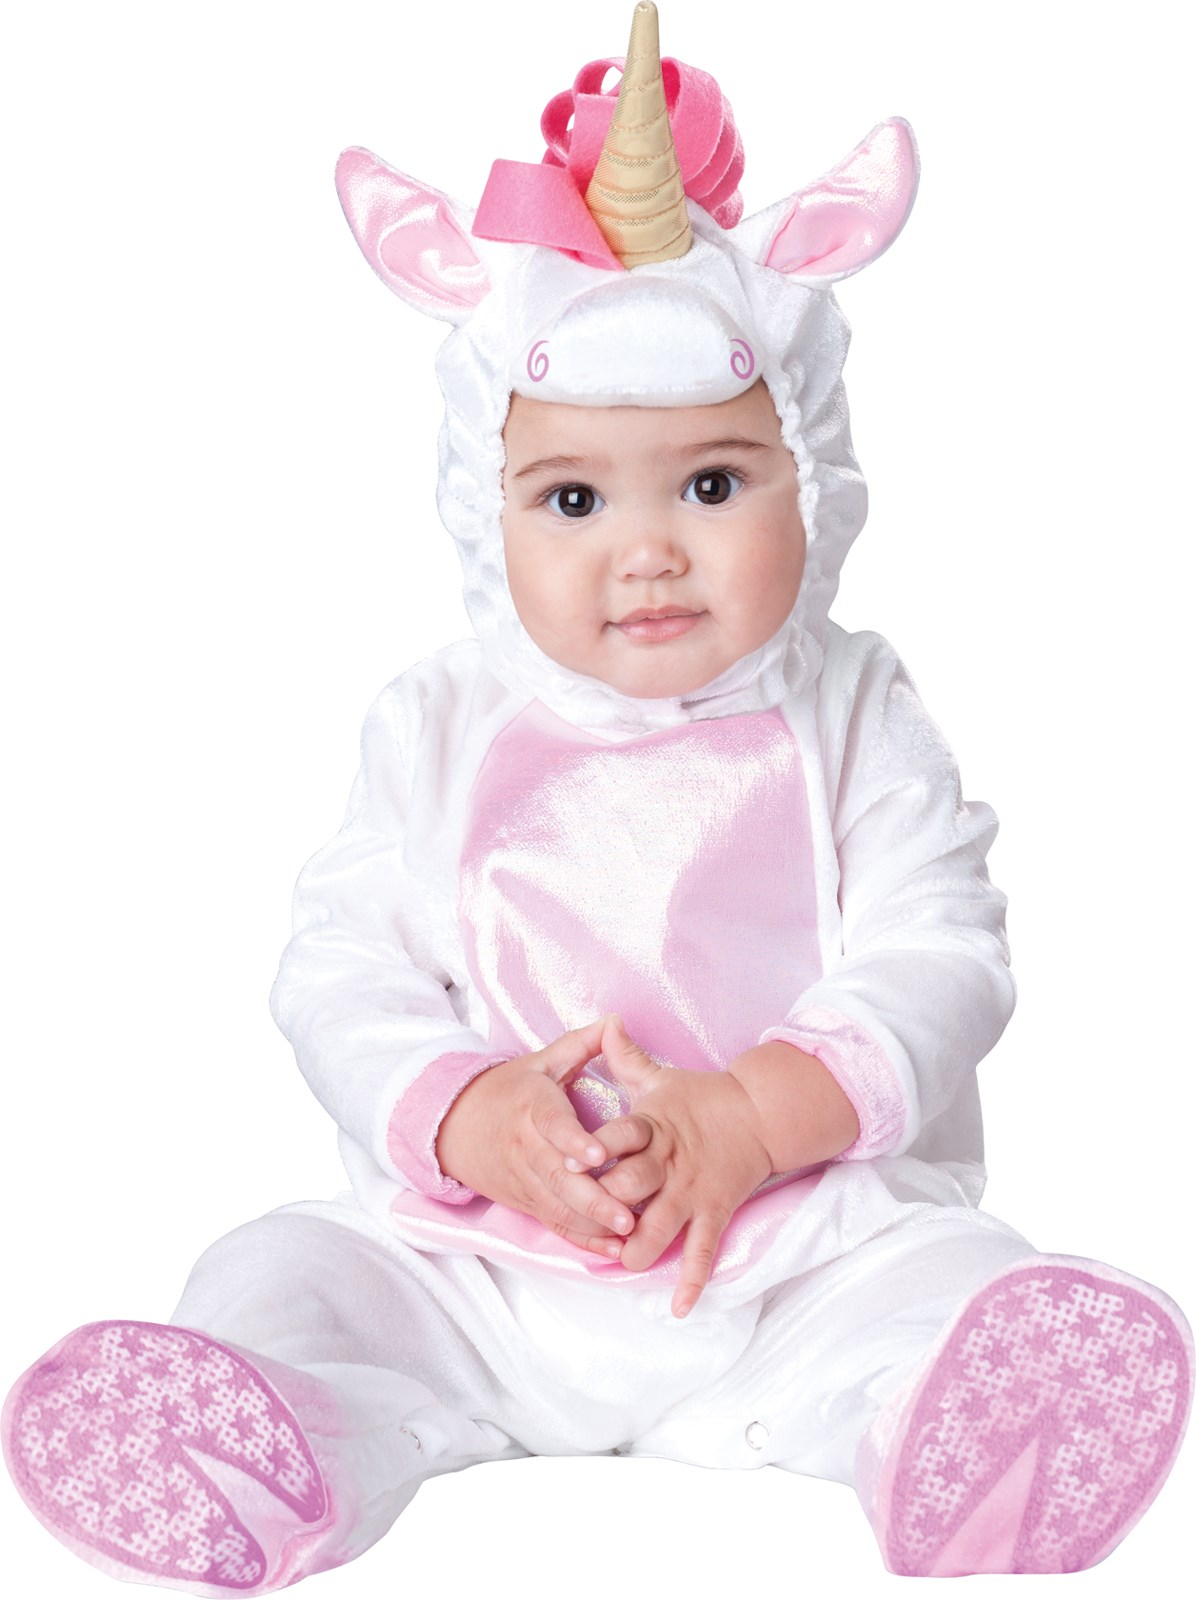 Magical Unicorn Infant / Toddler Costume 12-18 Months